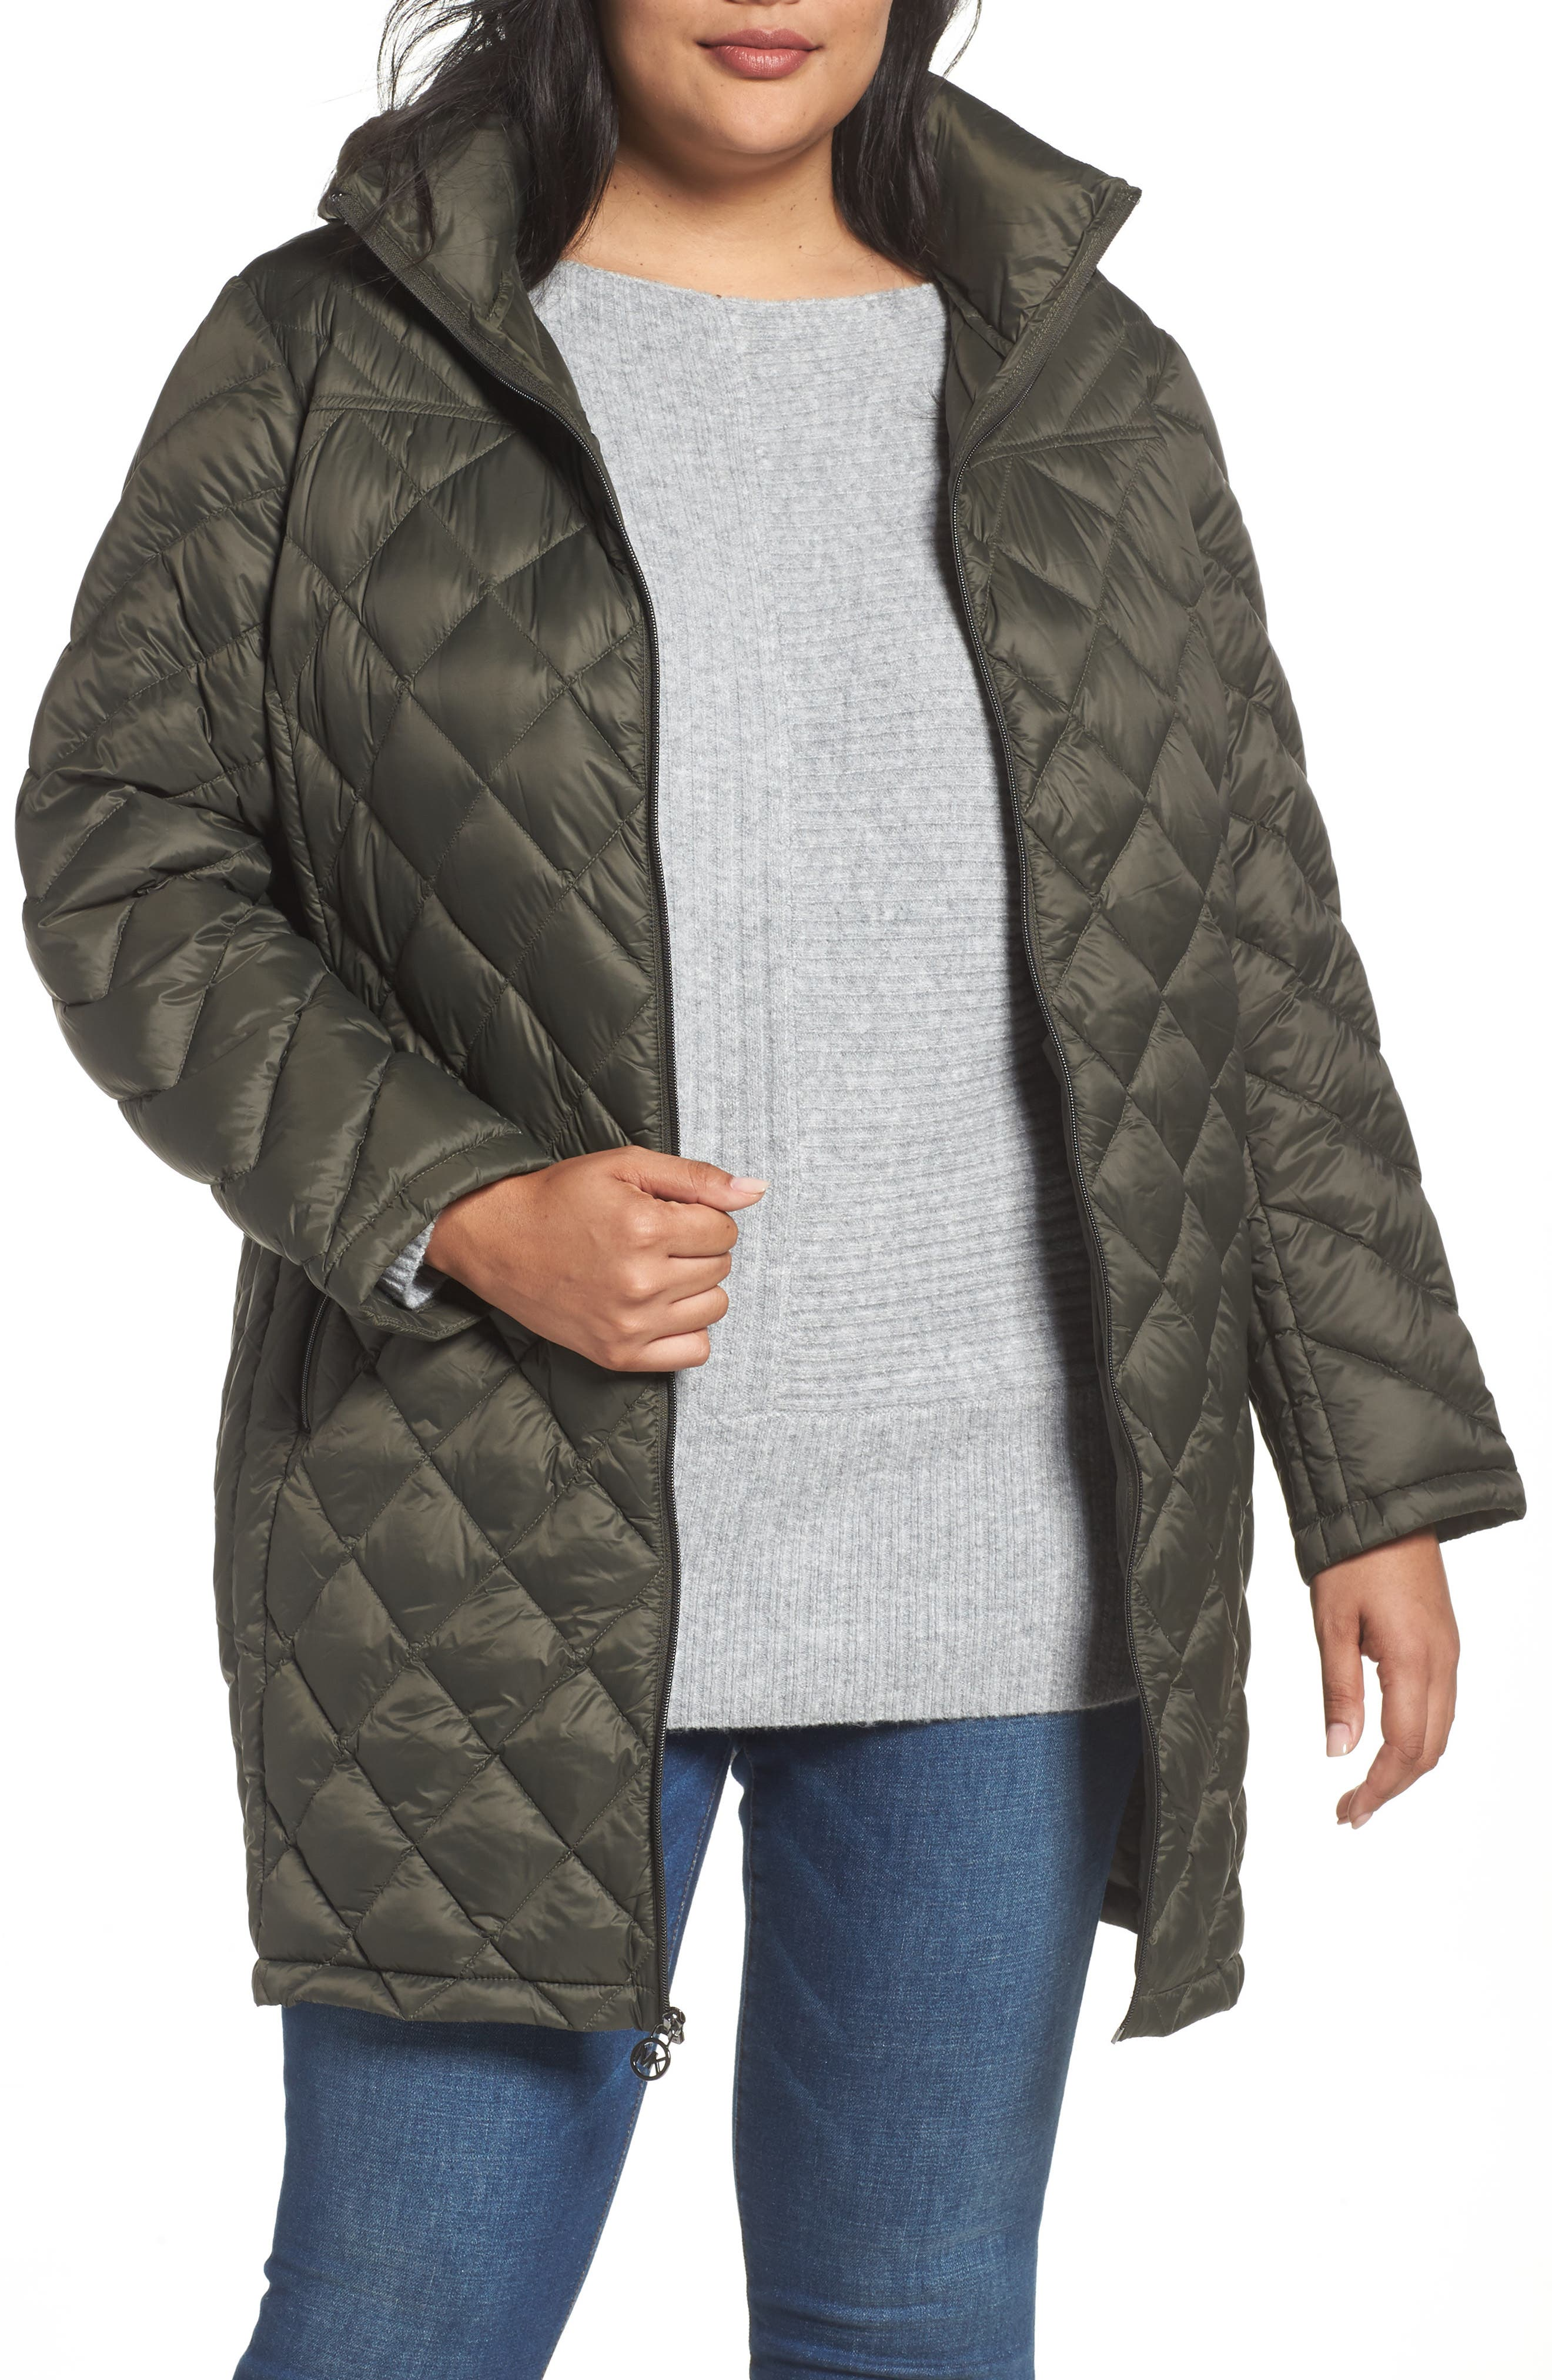 Alternate Image 1 Selected - MICHAEL Michael Kors Packable Down Jacket (Plus Size)